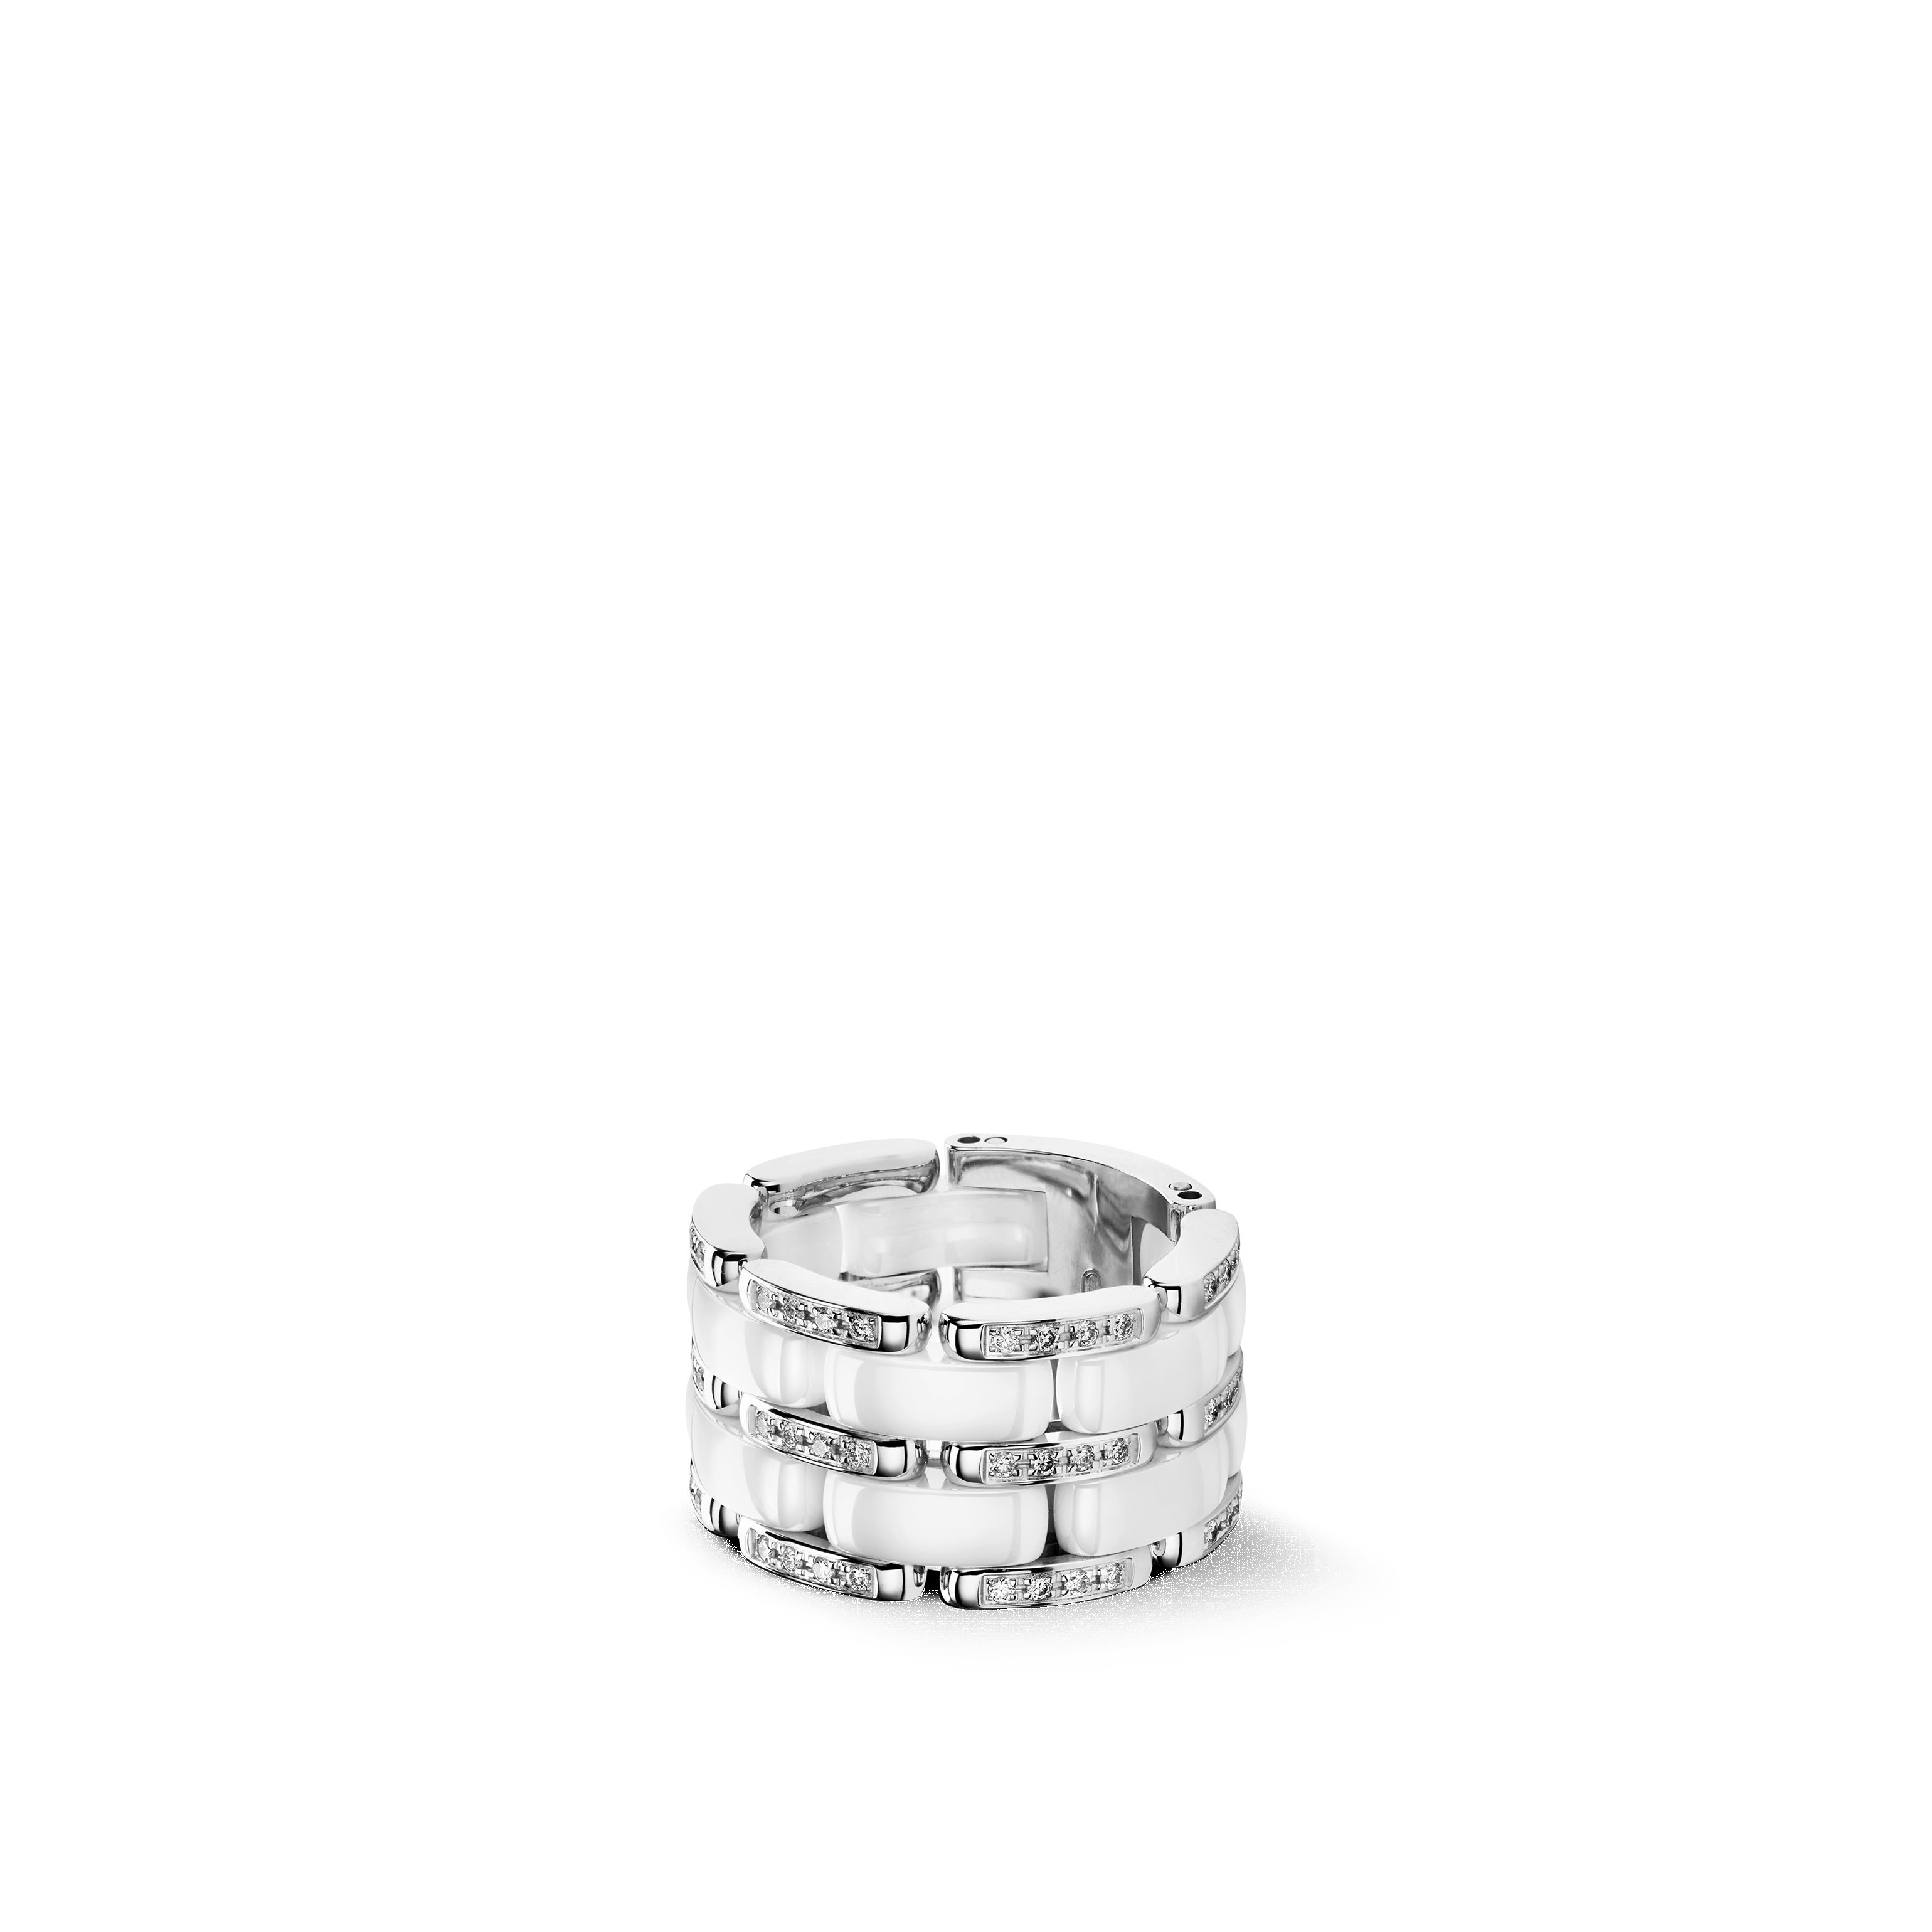 Ultra ring - Large version, 18K white gold, diamonds, white ceramic - CHANEL - Default view - see standard sized version